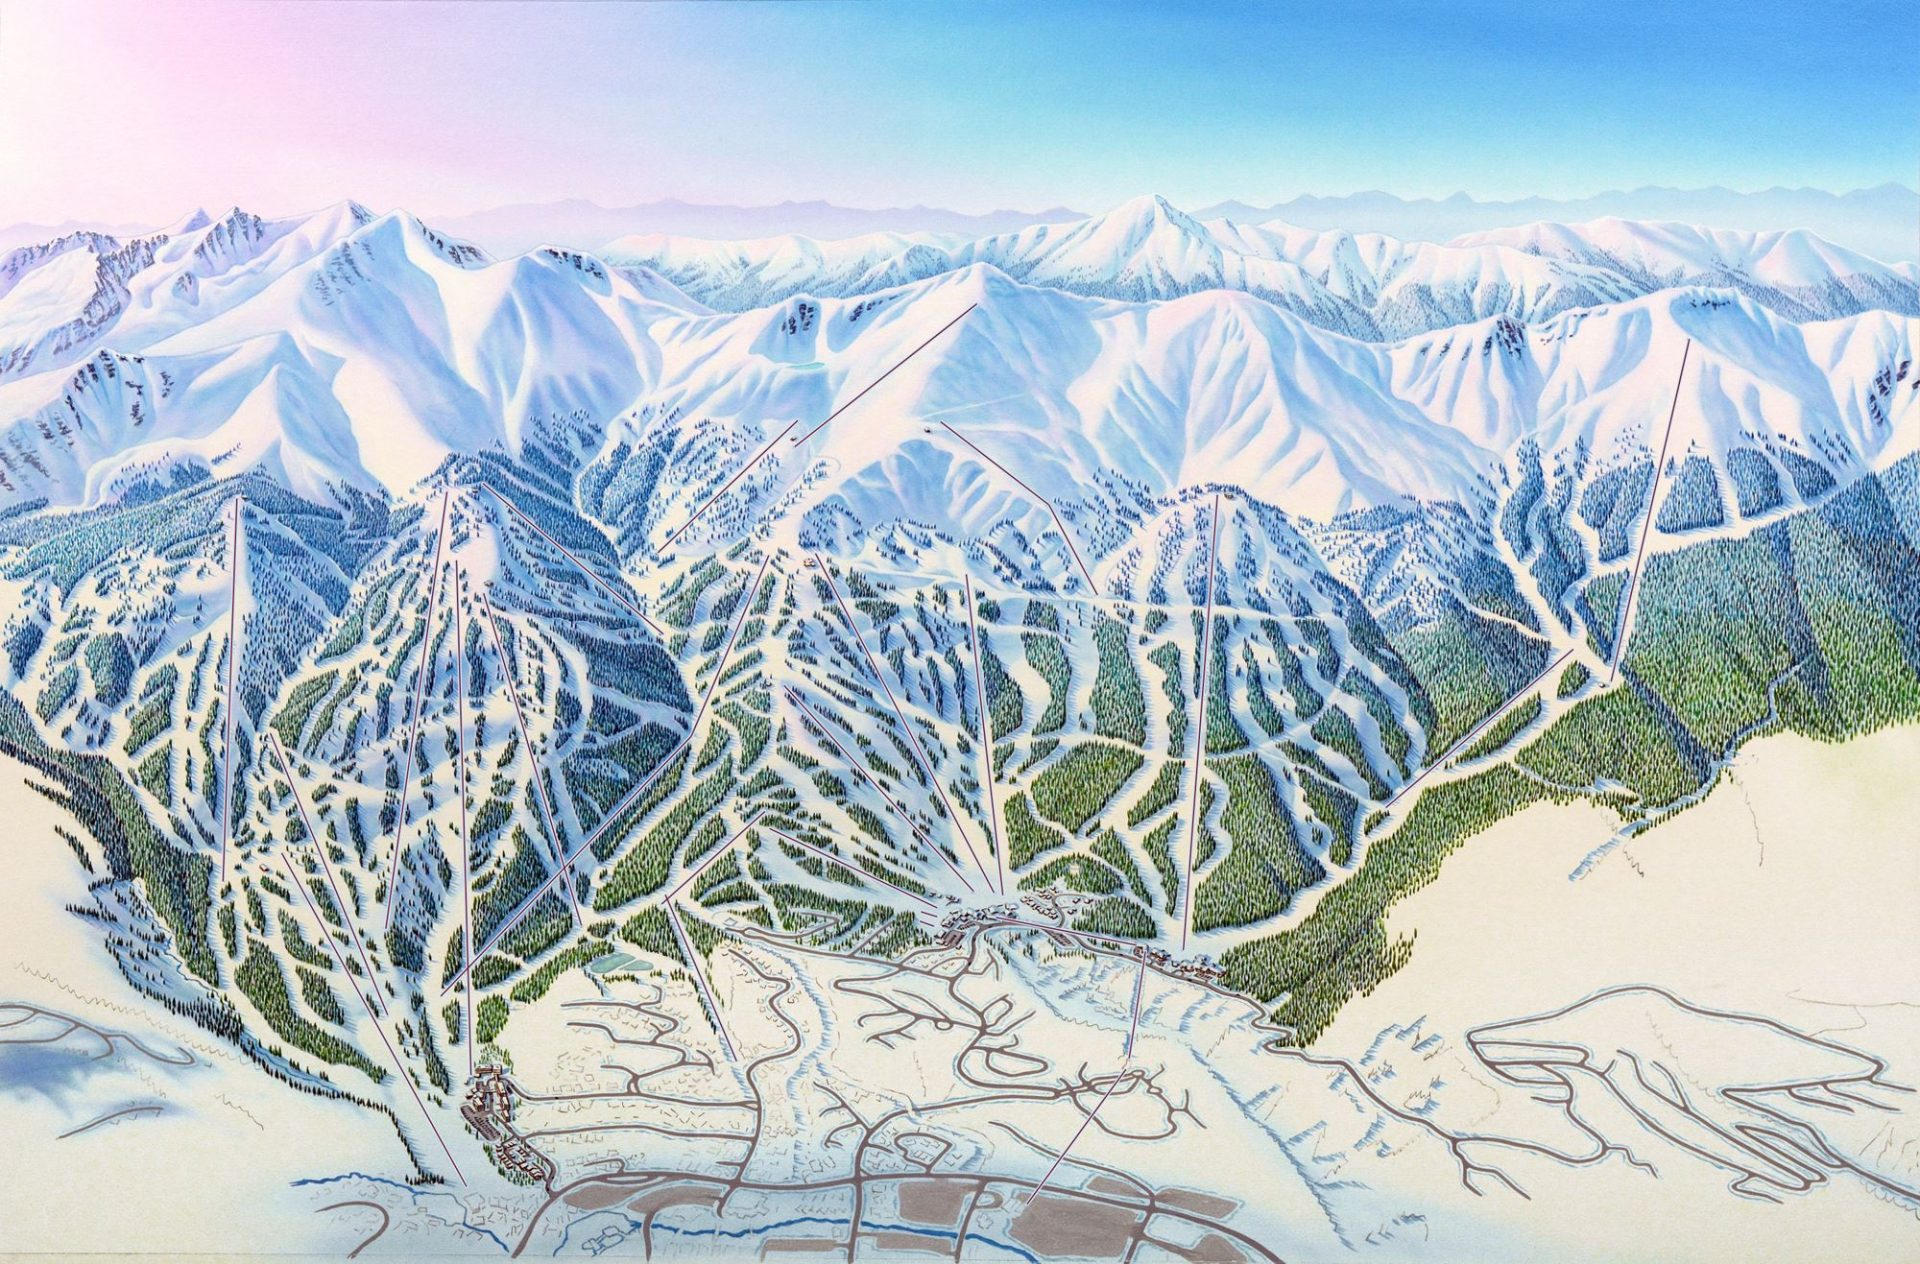 James Niehues: The Man Behind the Map 3